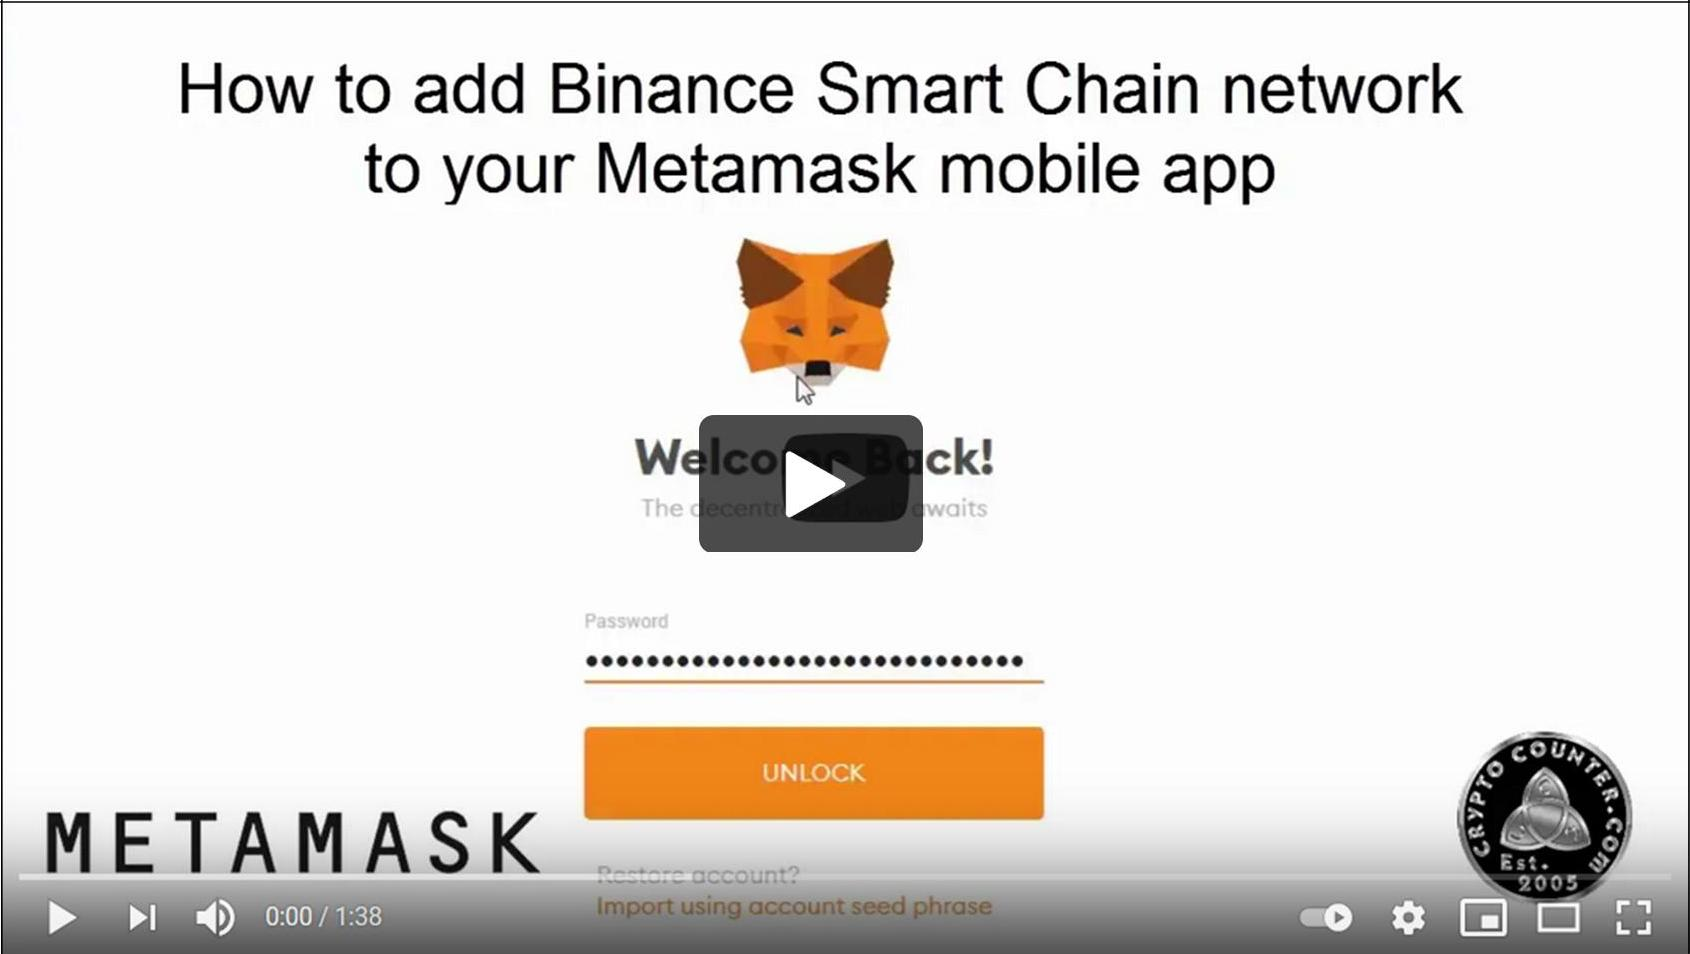 How to add Binance Smart Chain (BSC) to your Metamask iPhone app and Android app